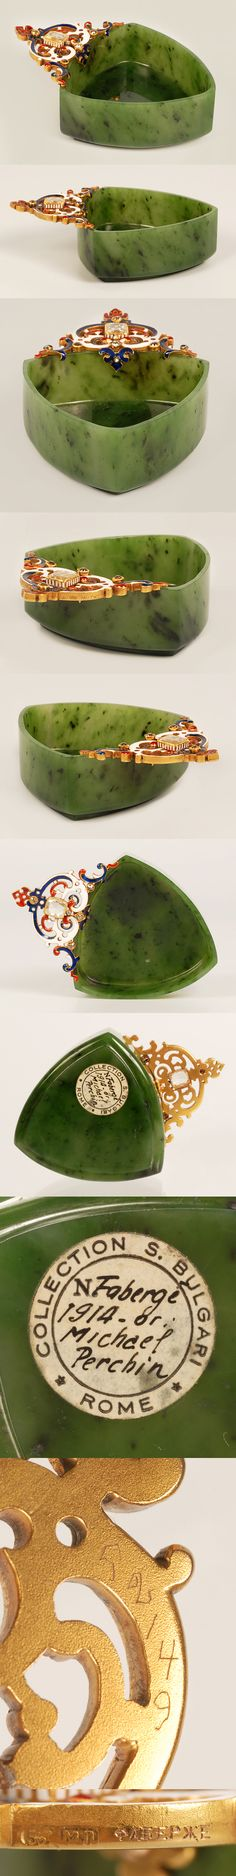 An extremely rare Faberge nephrite kovsh with an enamel and jeweled mount, workmaster Michael Perchin, ST Petersburg, circa 1890 with scratched inventory number 52149. Of rounded triangular form, carved of nephrite with a stepped base, mounted with an openwork handle of scrolls in red, blue, and white enamel, set with five small diamonds and a large central diamond.